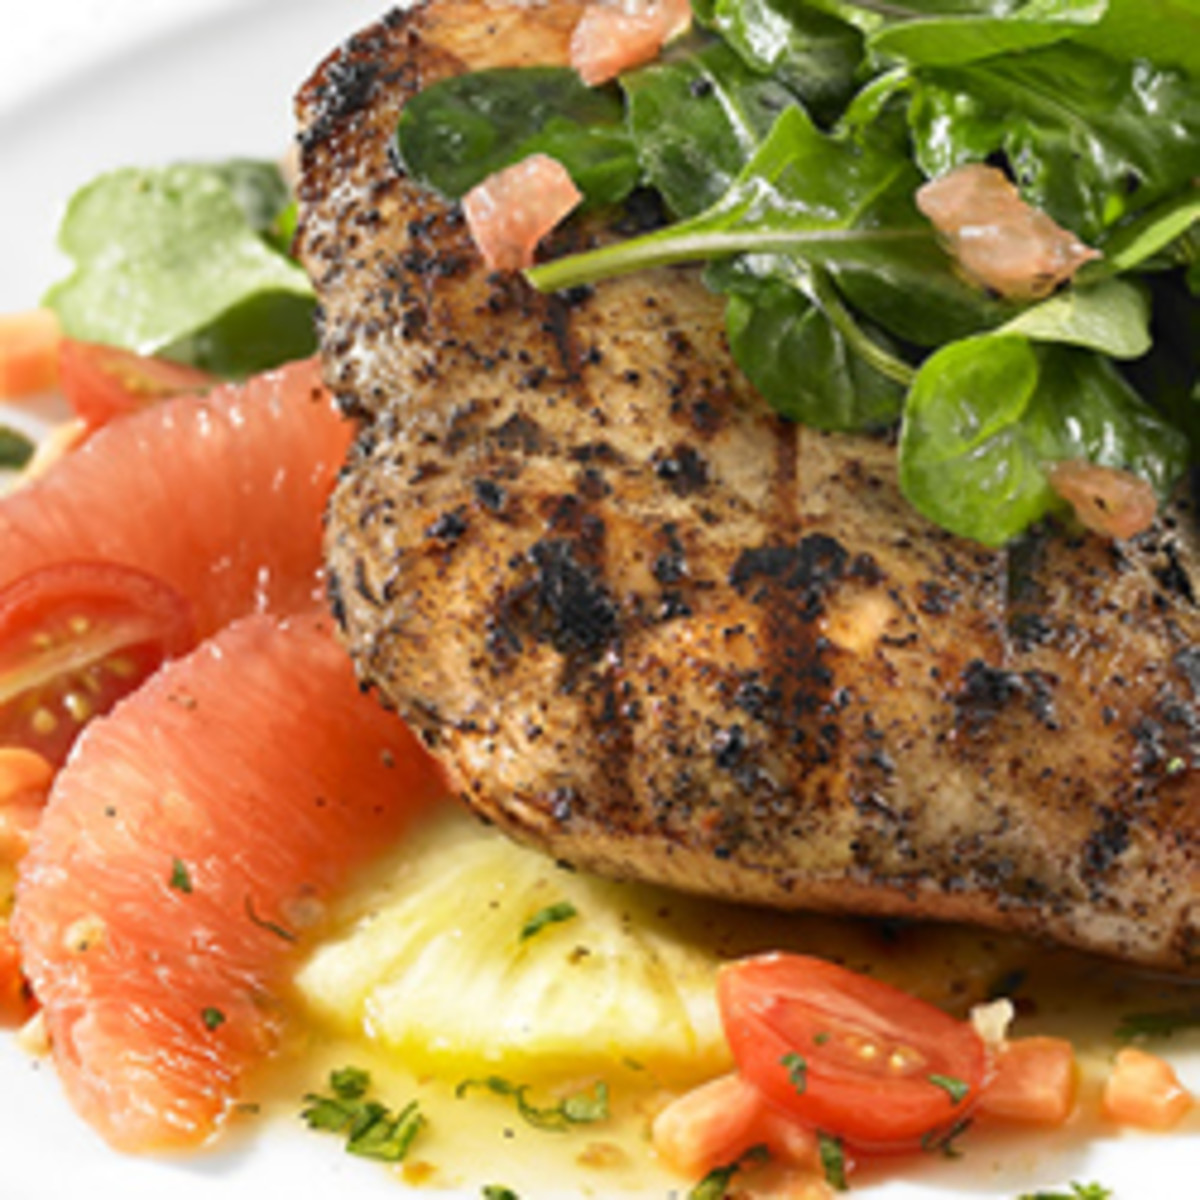 Florida Grapefruit and Jerk-Grilled Chicken with Arugula Salad